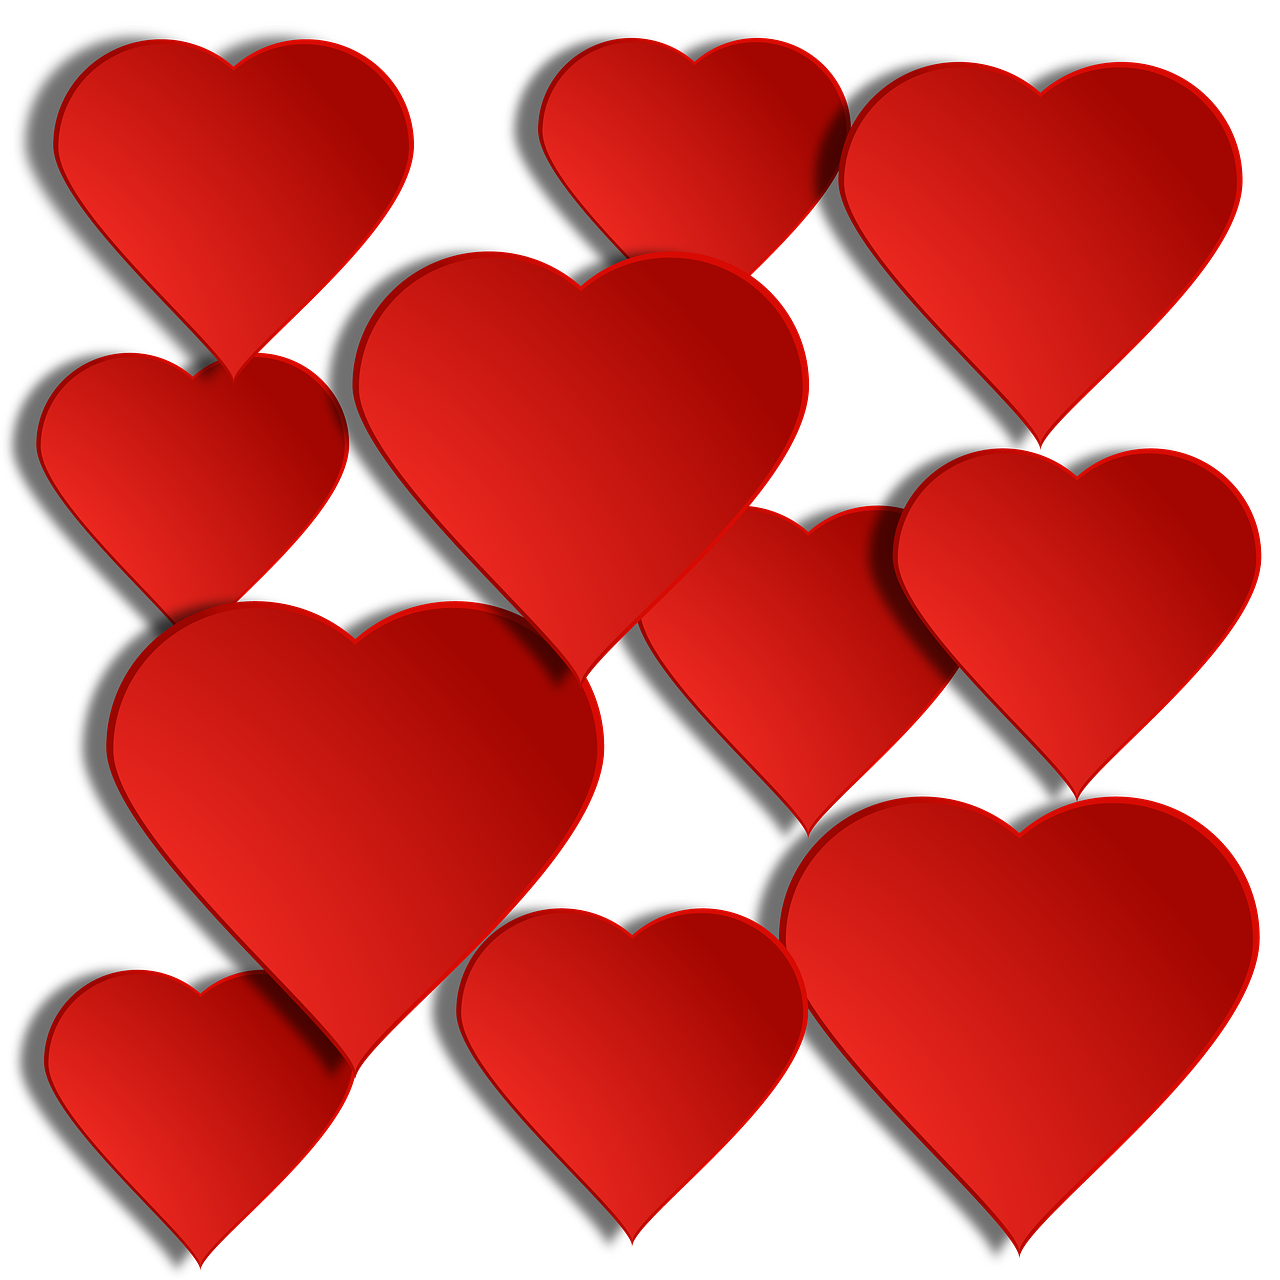 Floating hearts png. Holiday valentines valentine many